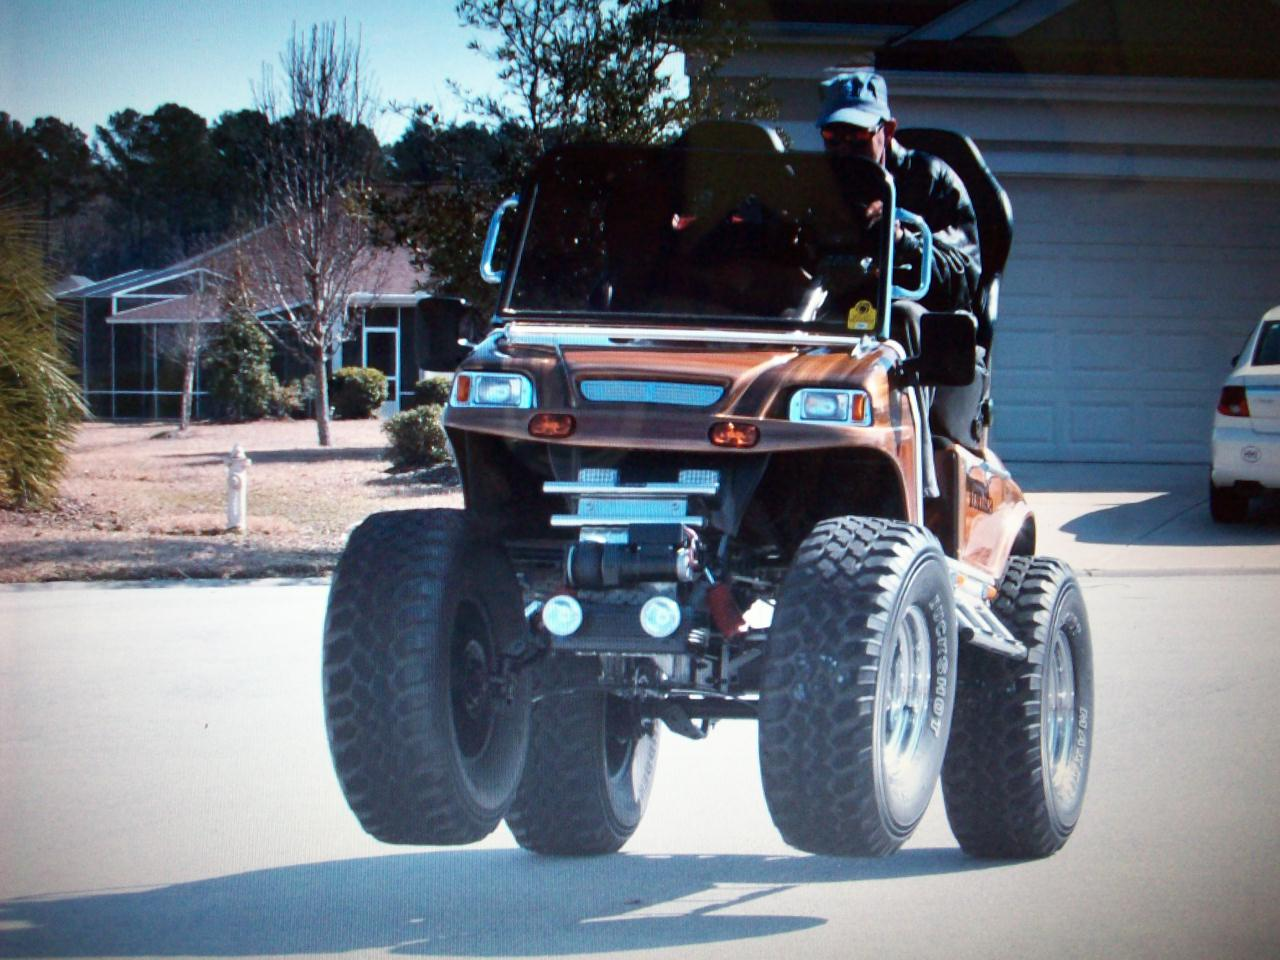 hight resolution of liv golf car wheelie poppin